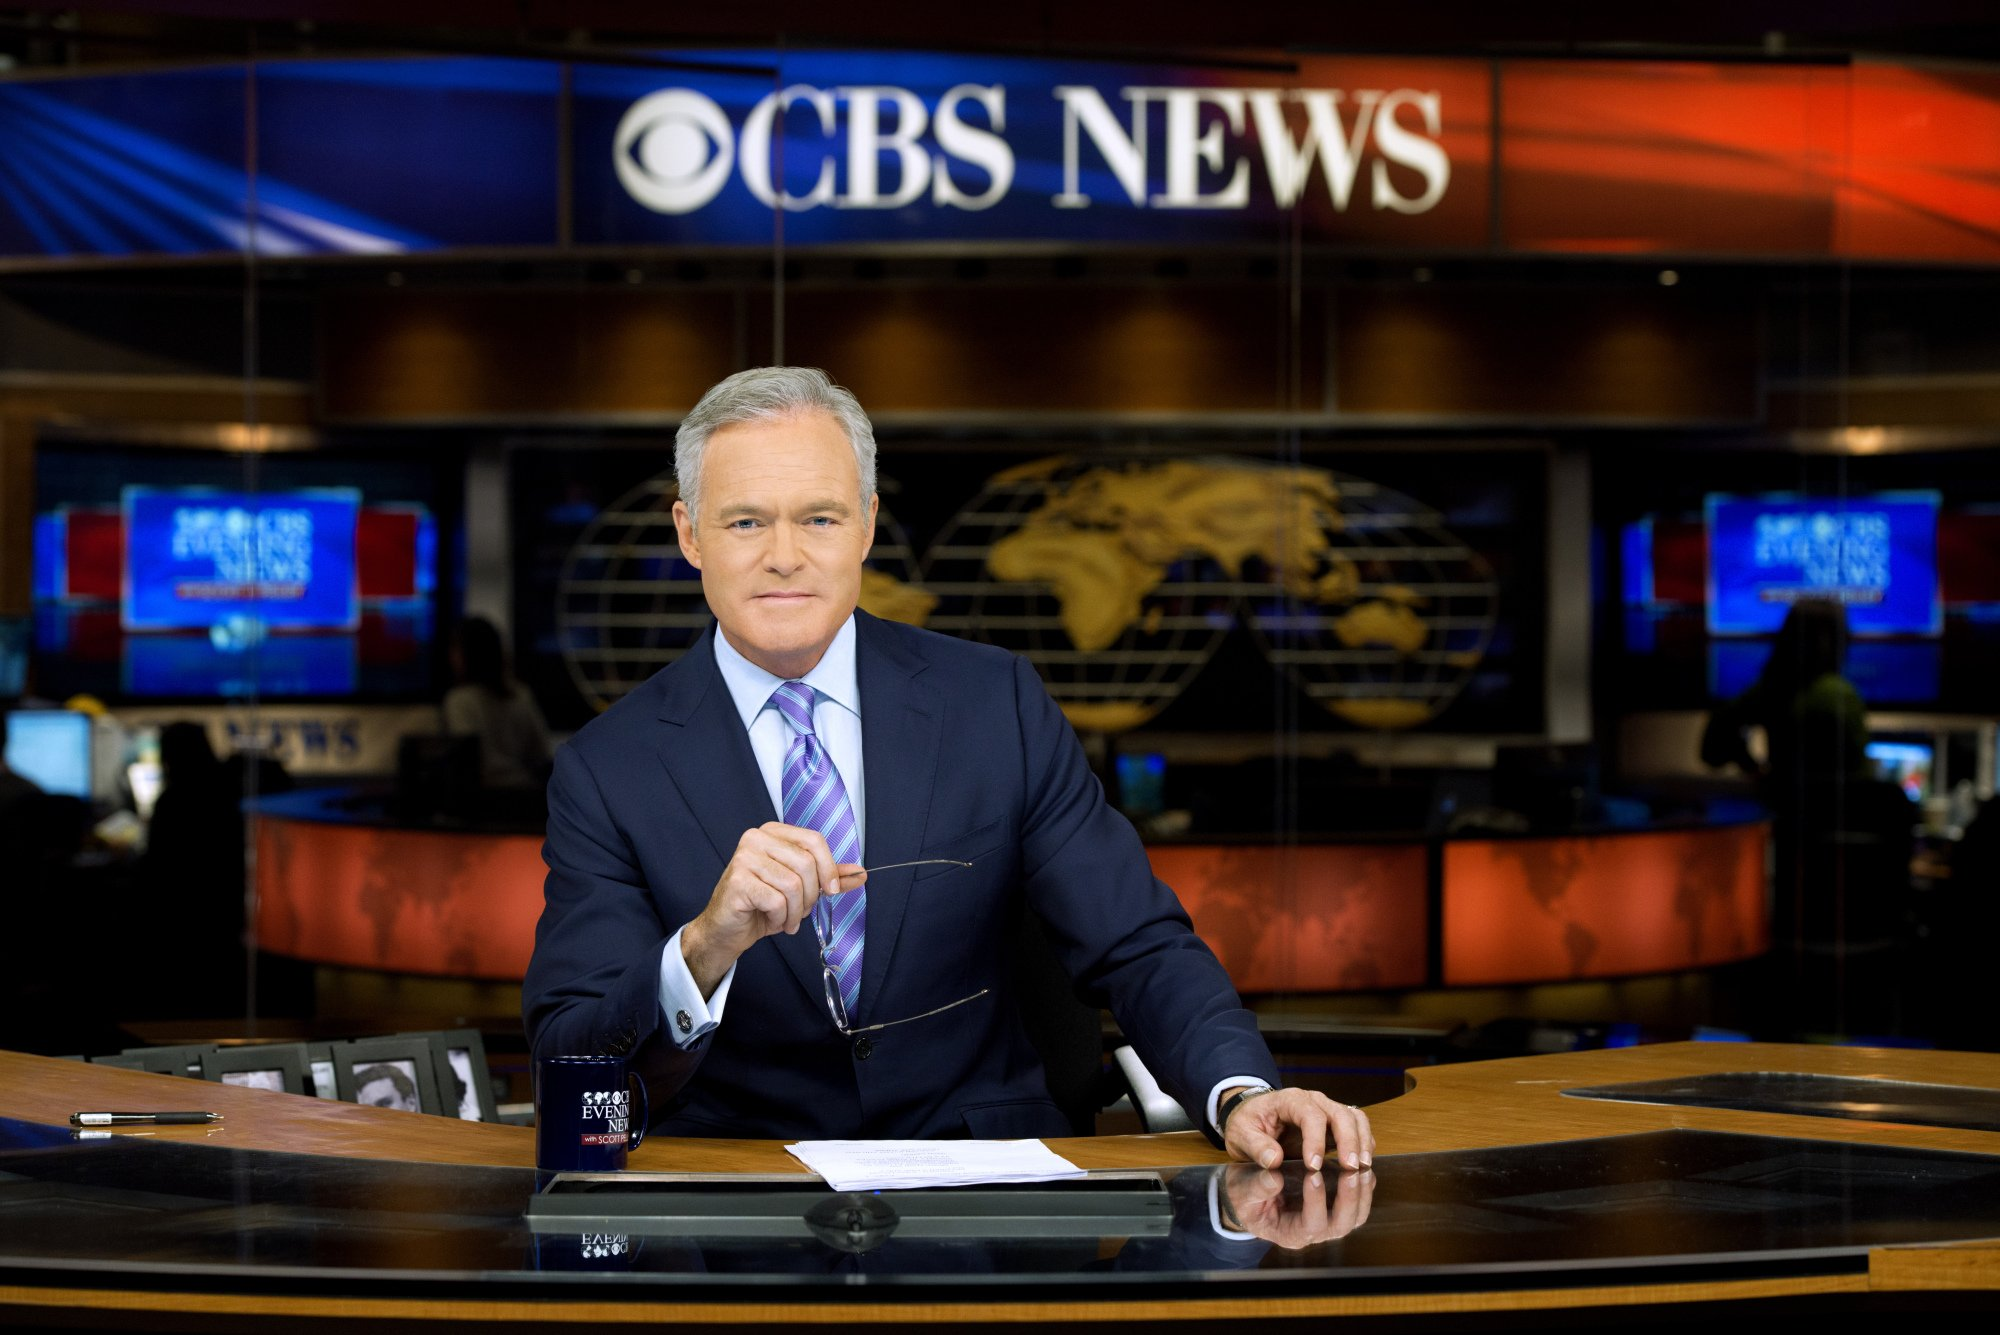 CBS Evening News Anchor and Managing Editor Scott Pelley in New York on January 17, 2014. | Source: Getty Images.